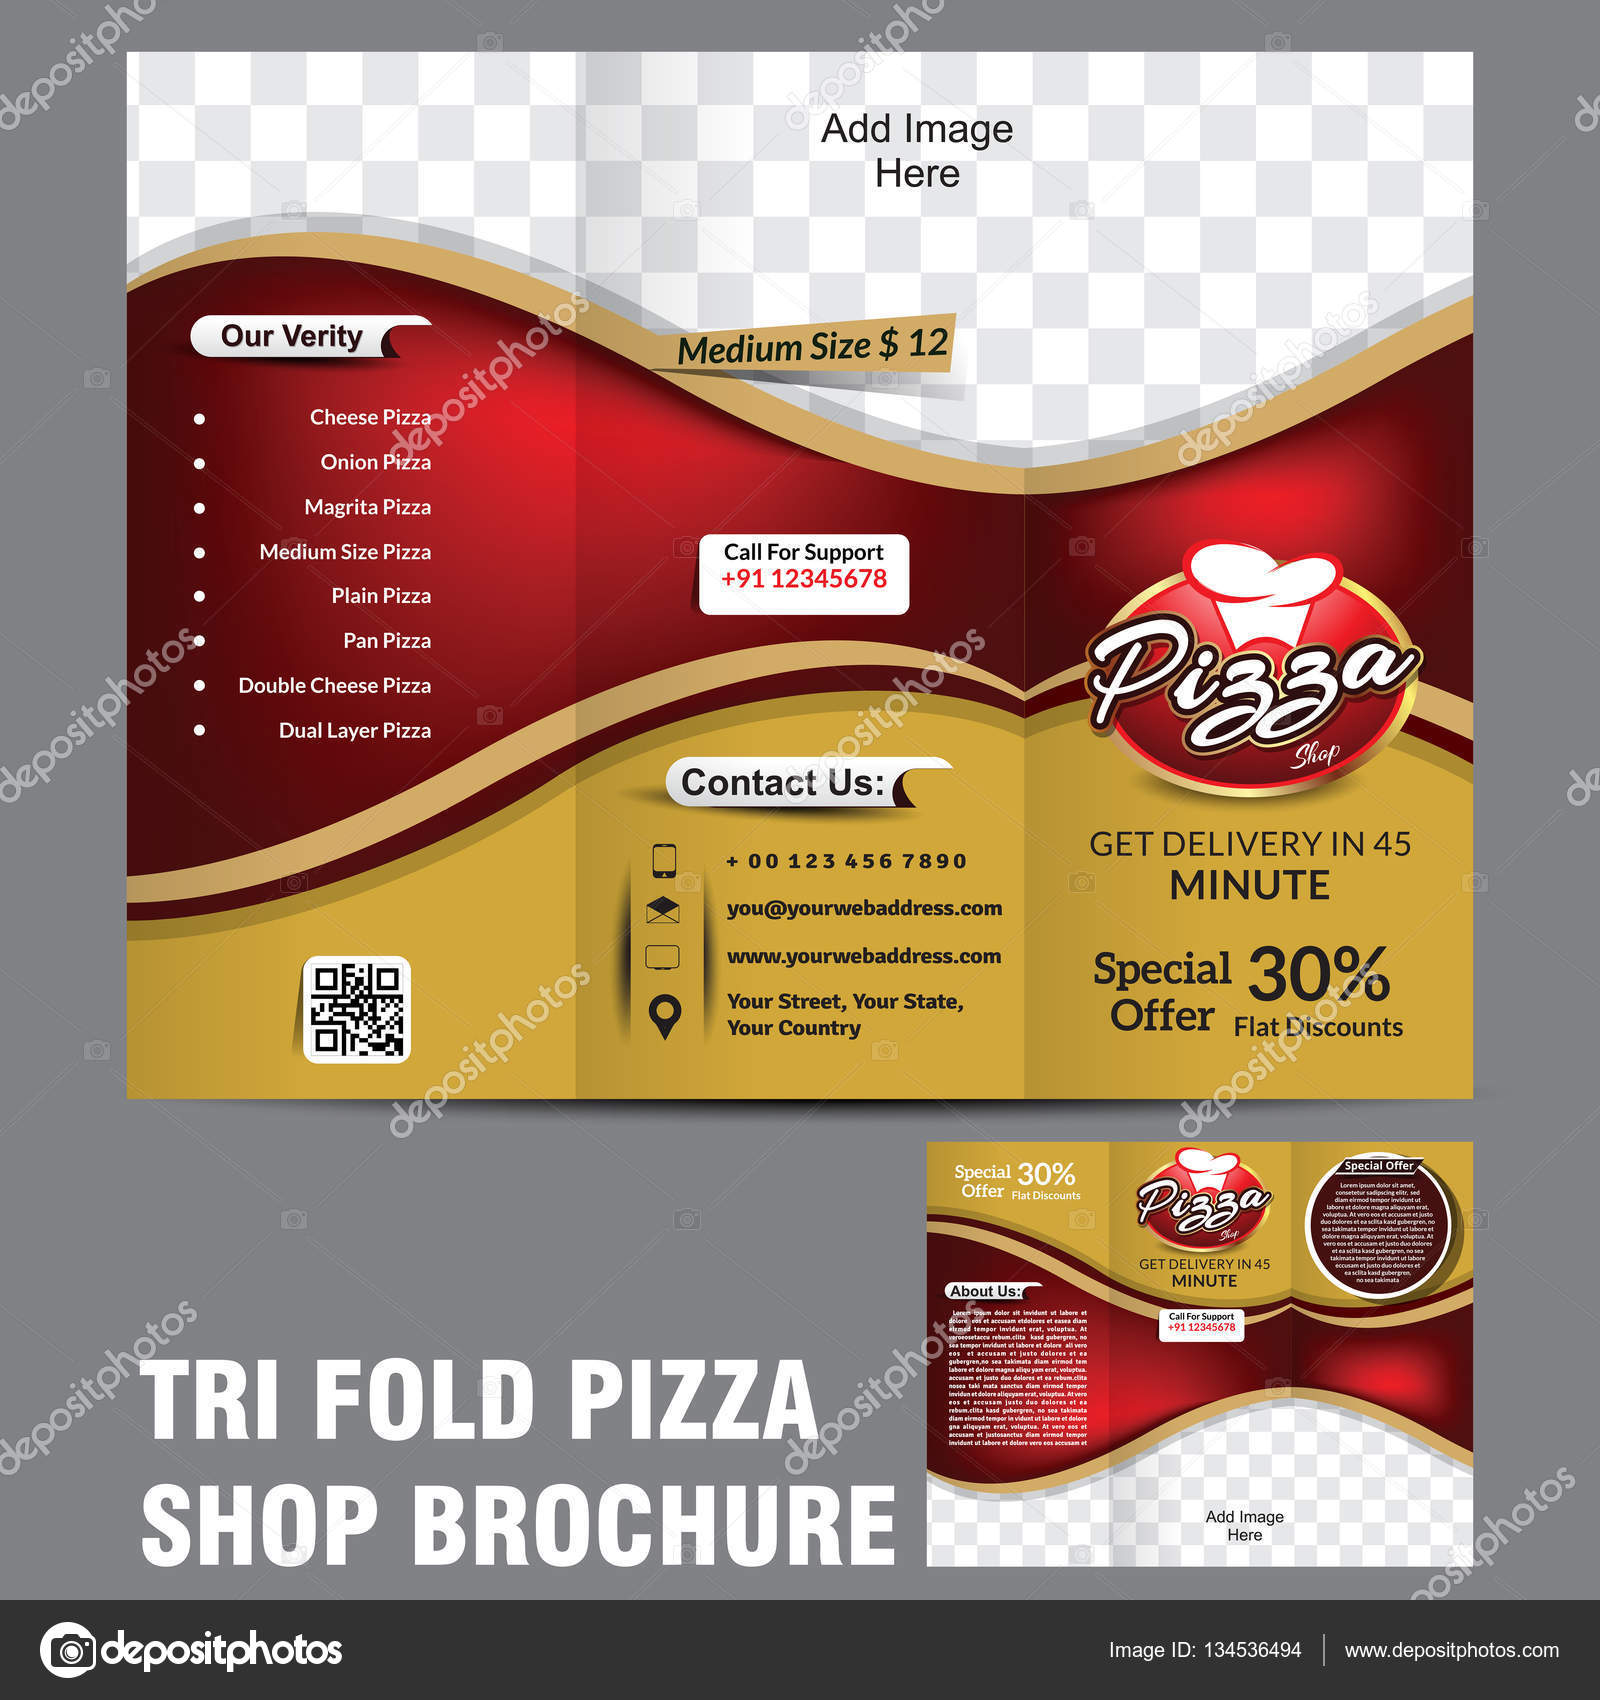 tri fold pizza brochure template stock vector gurukripa 134536494